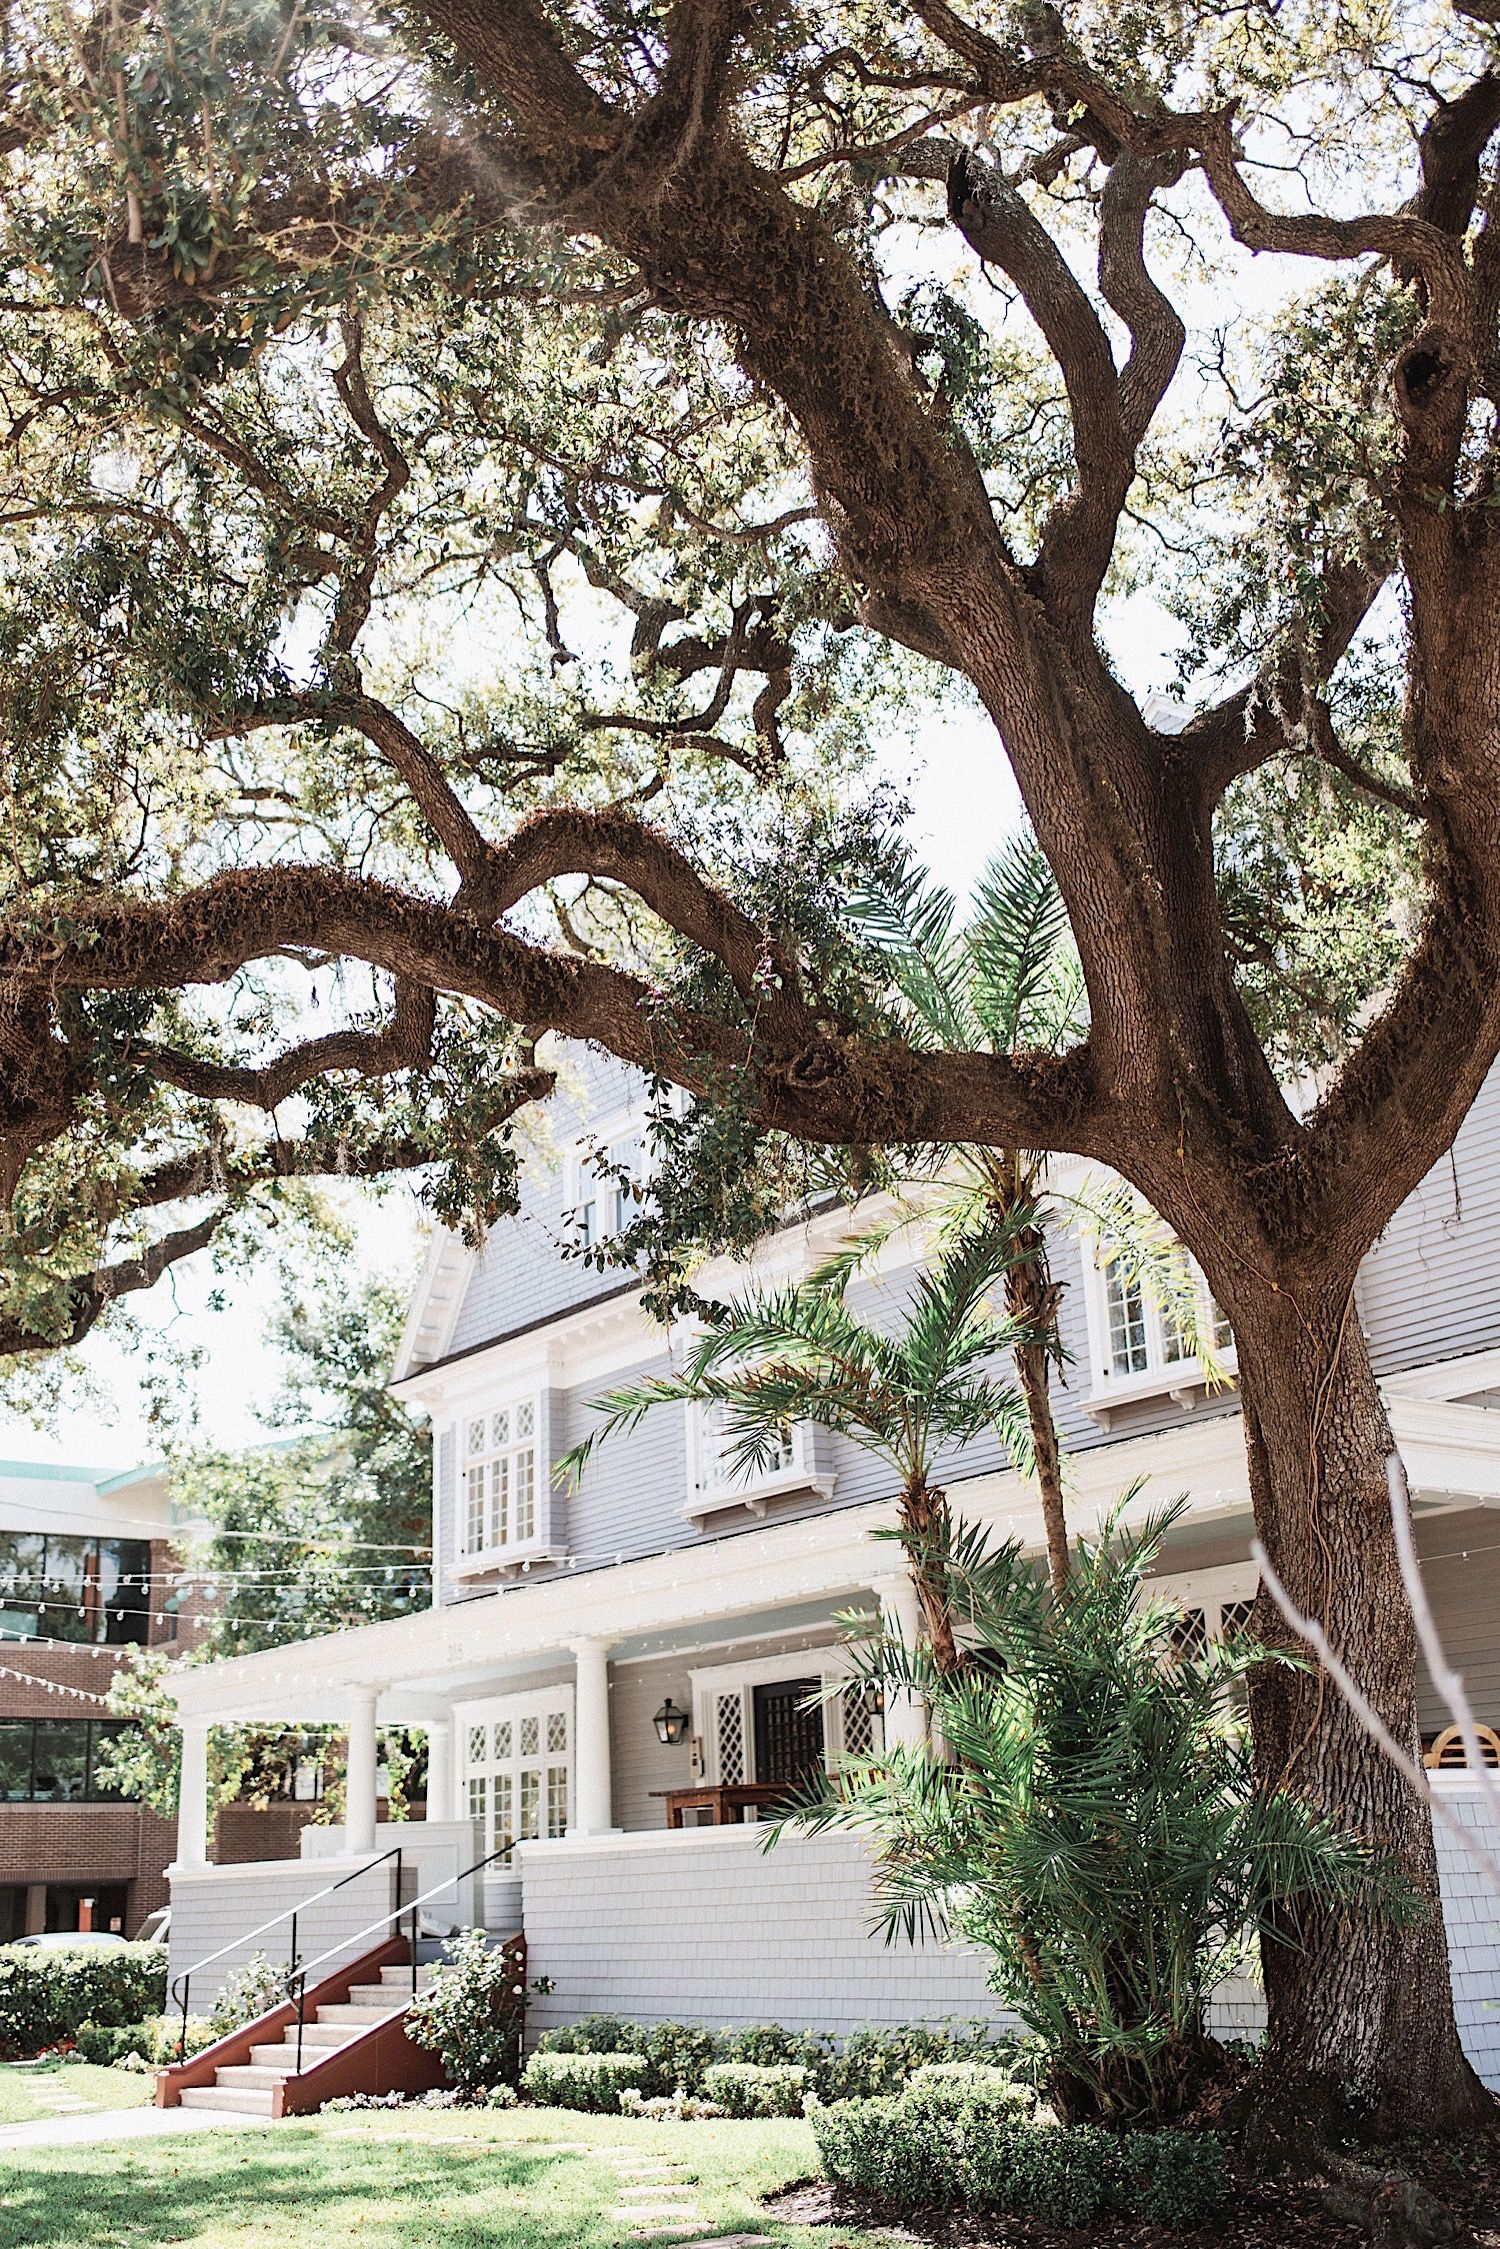 The Orlo, a historic wedding venue in Tampa, FL with a large tree in the yard